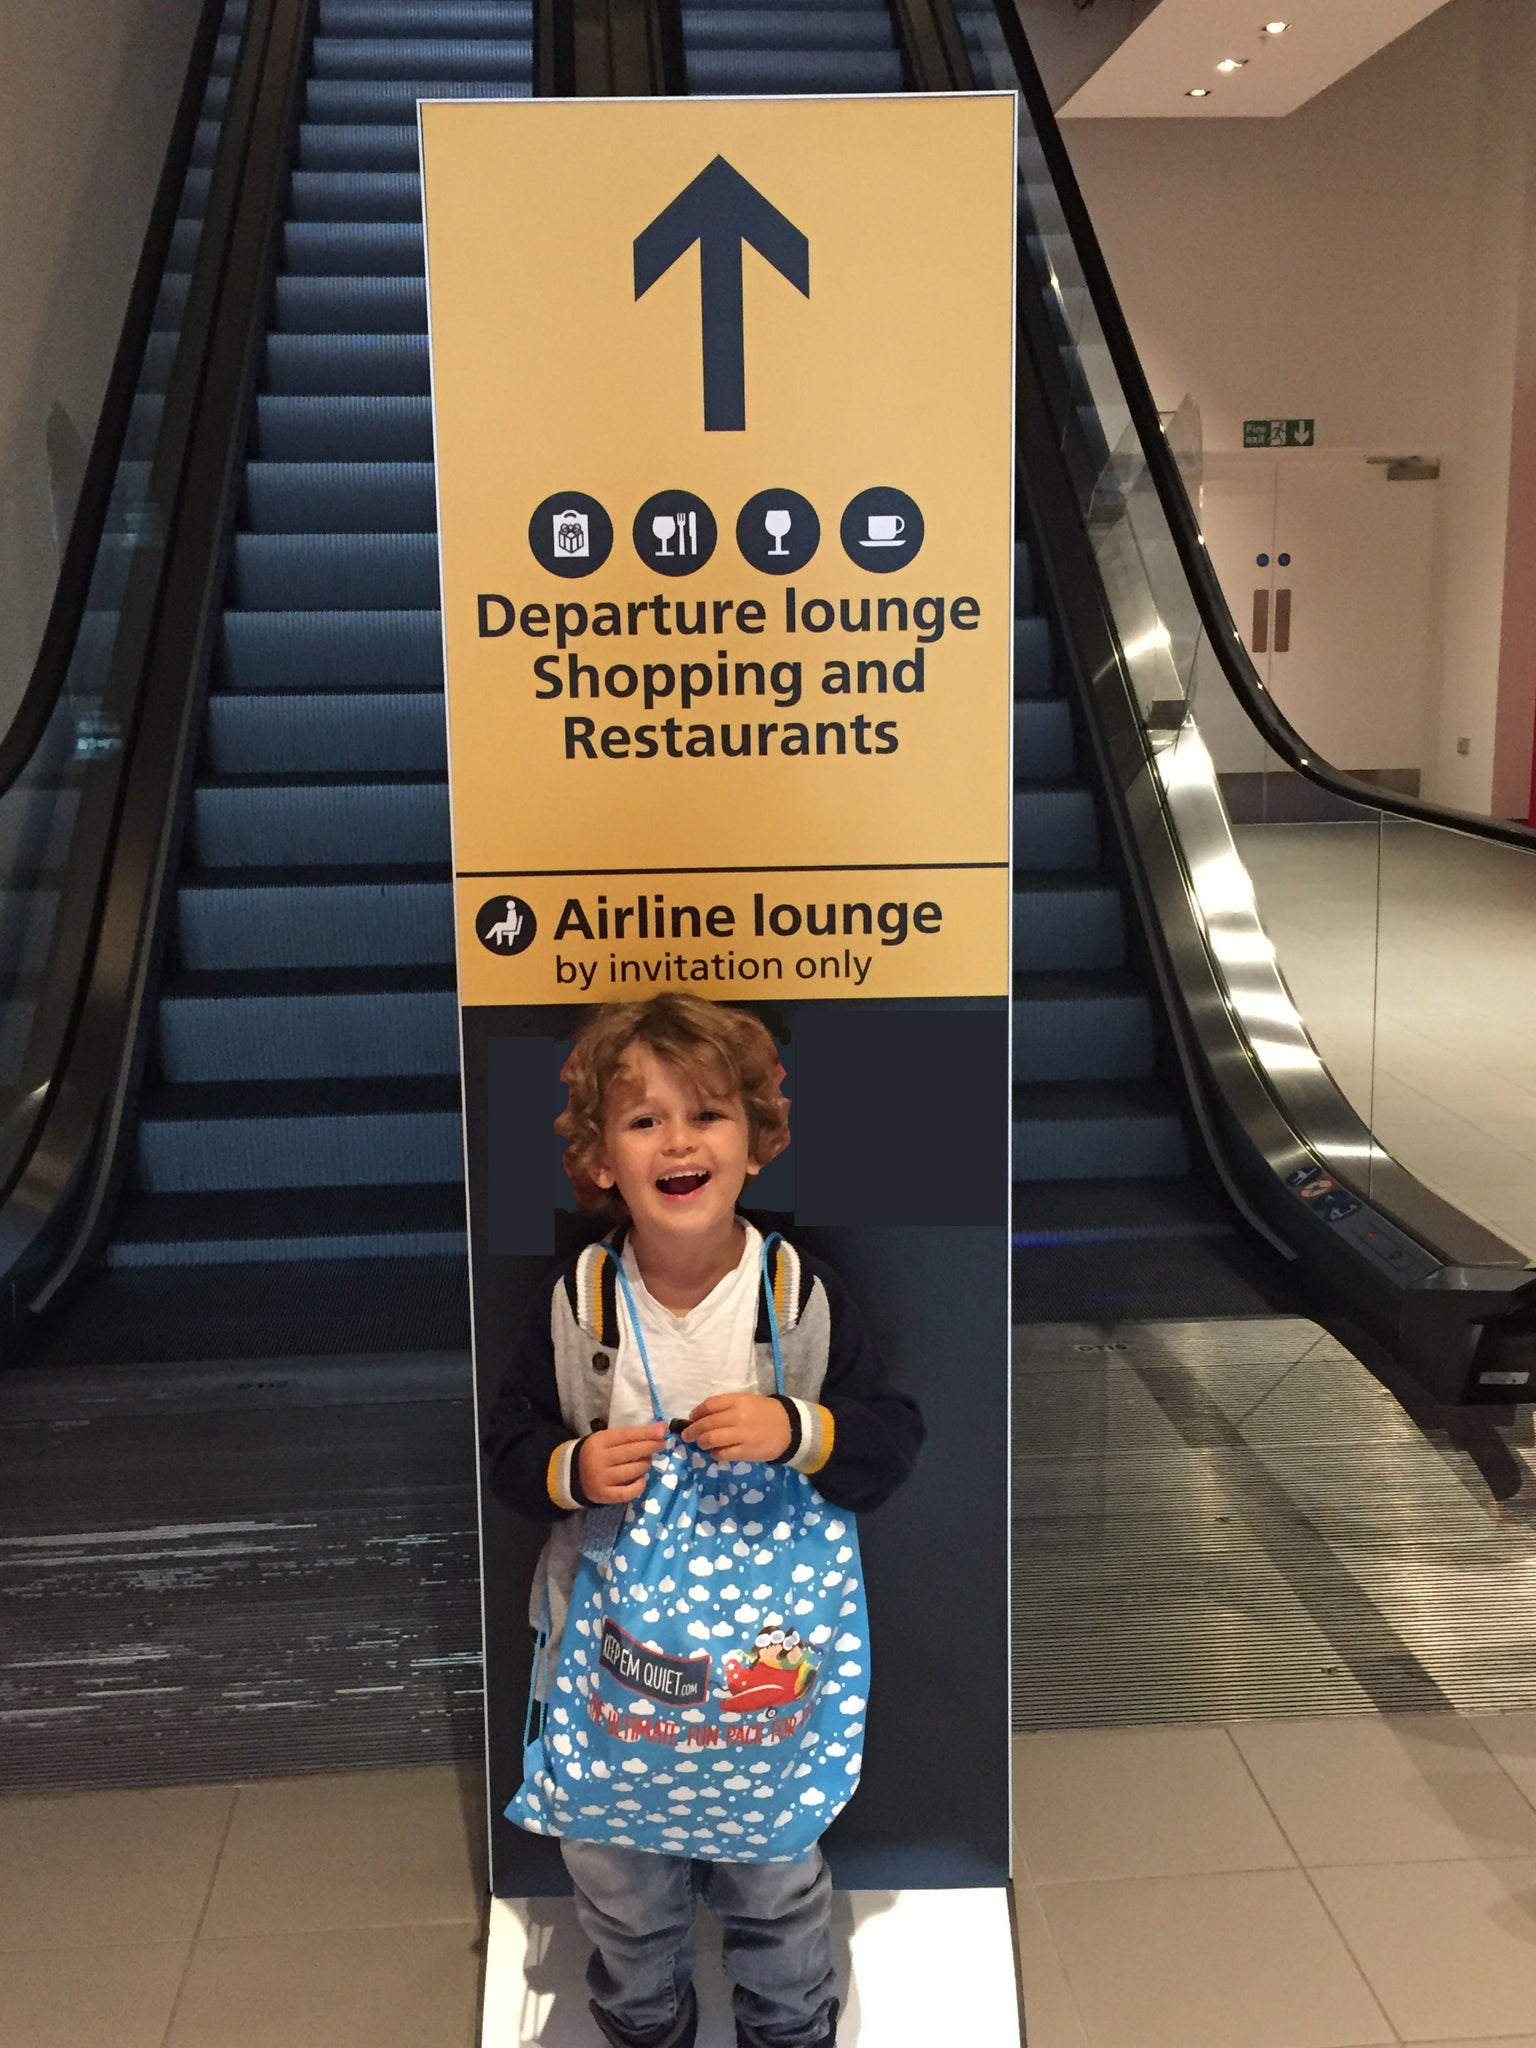 Heathrow airport entertainment ideas for kids keepemquiet